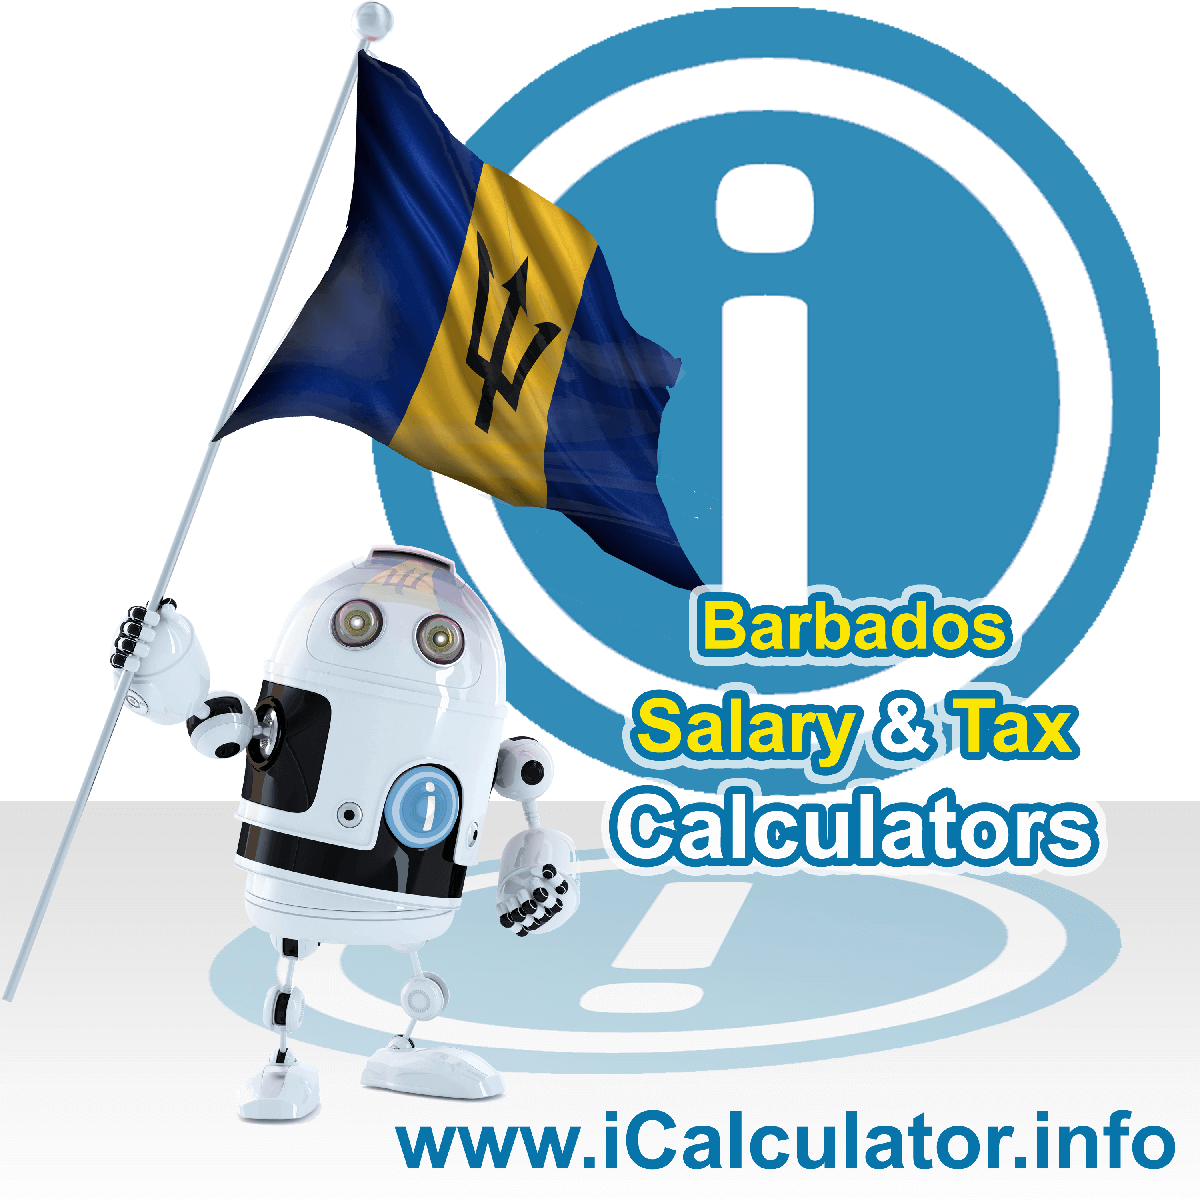 Barbados Tax Calculator. This image shows the Barbados flag and information relating to the tax formula for the Barbados Salary Calculator